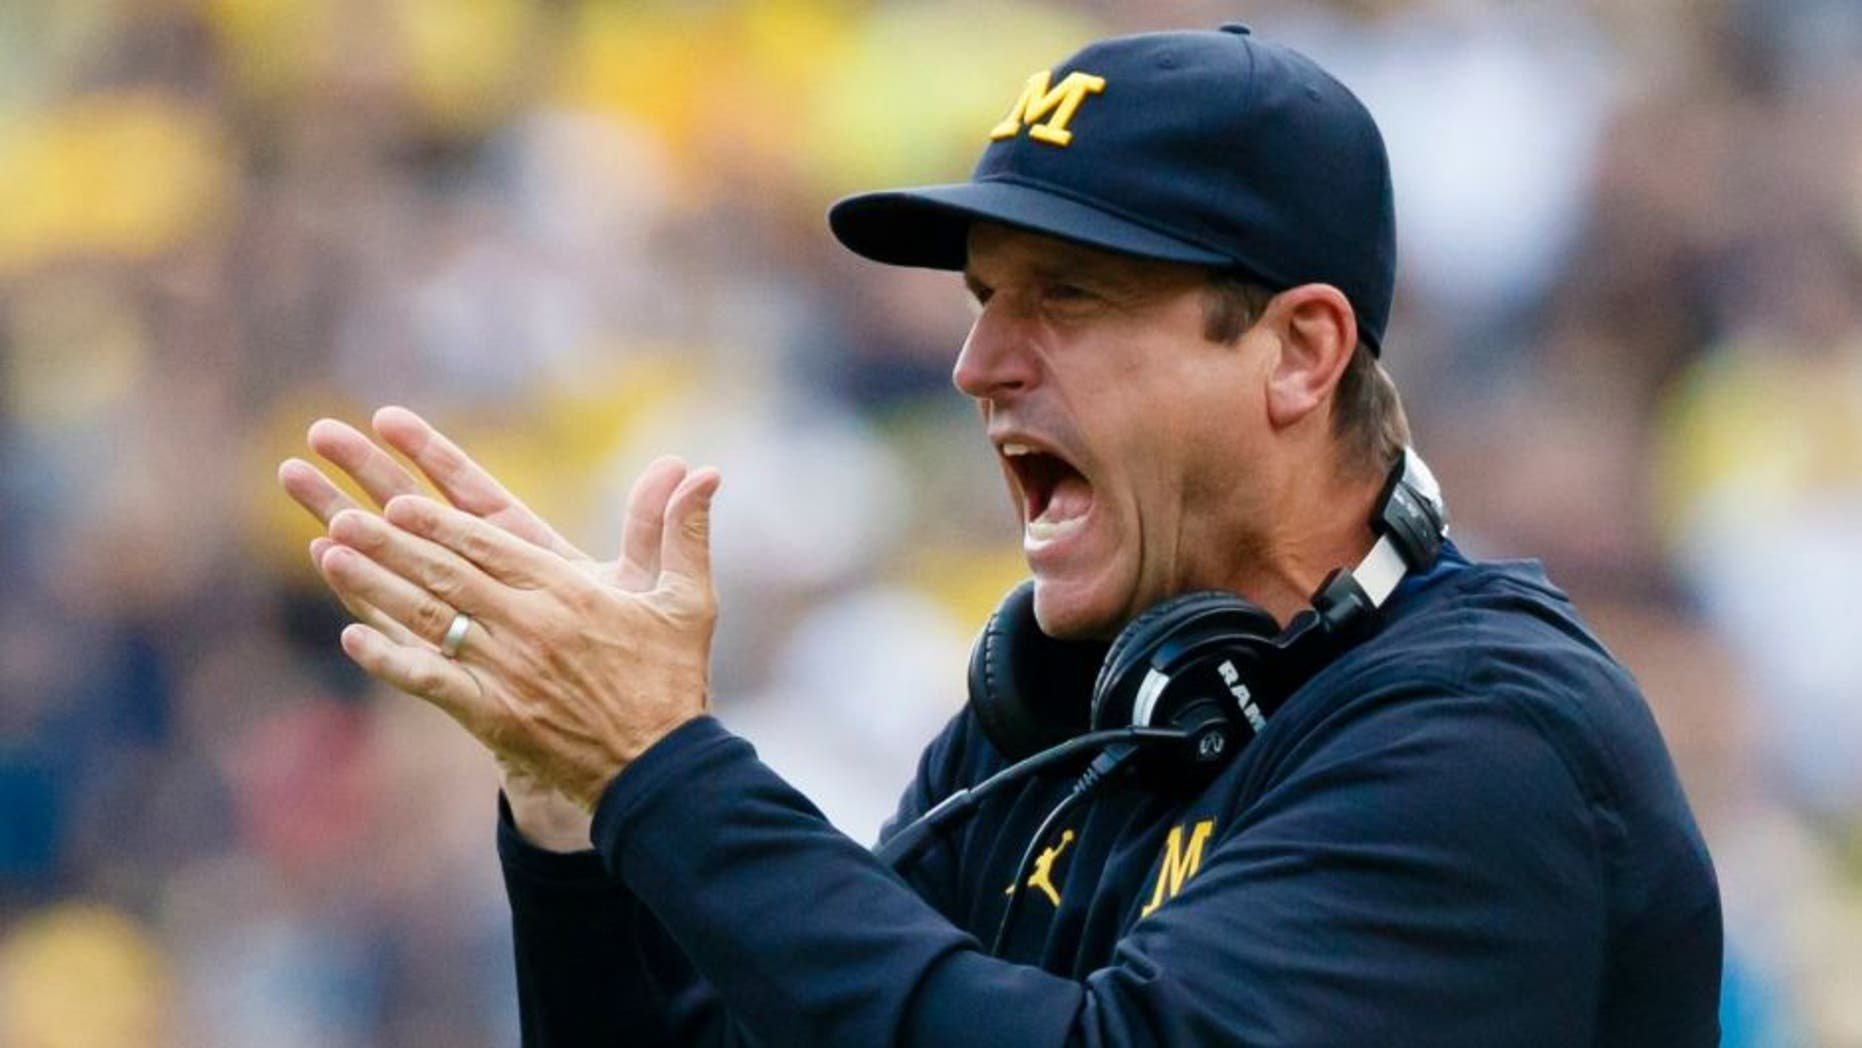 Sep 10, 2016; Ann Arbor, MI, USA; Michigan Wolverines head coach Jim Harbaugh claps after a touchdown in the second half against the UCF Knights at Michigan Stadium. Michigan won 51-14. Mandatory Credit: Rick Osentoski-USA TODAY Sports